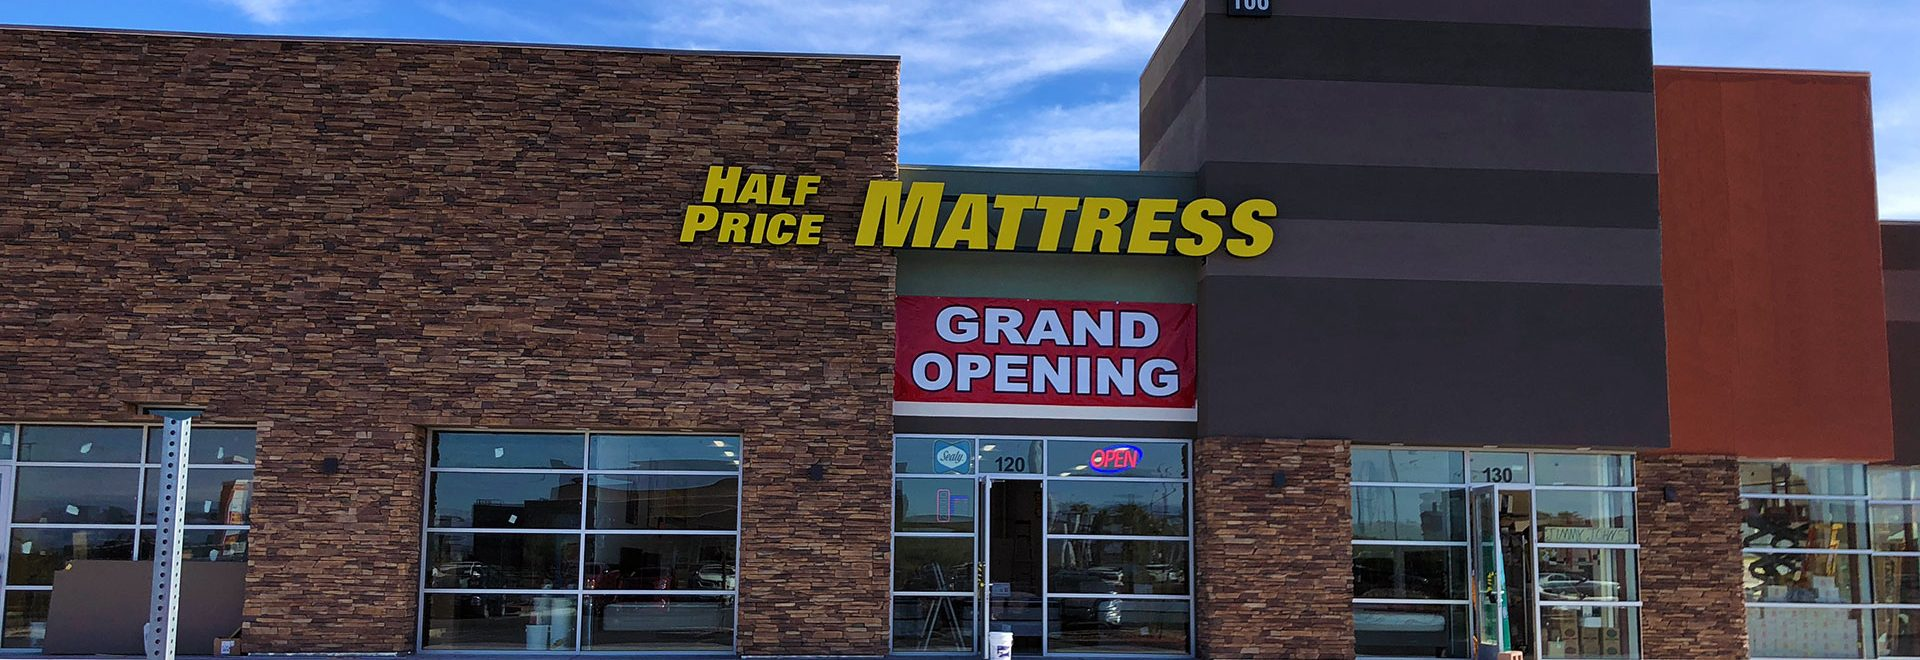 half-price-mattress-frontstore